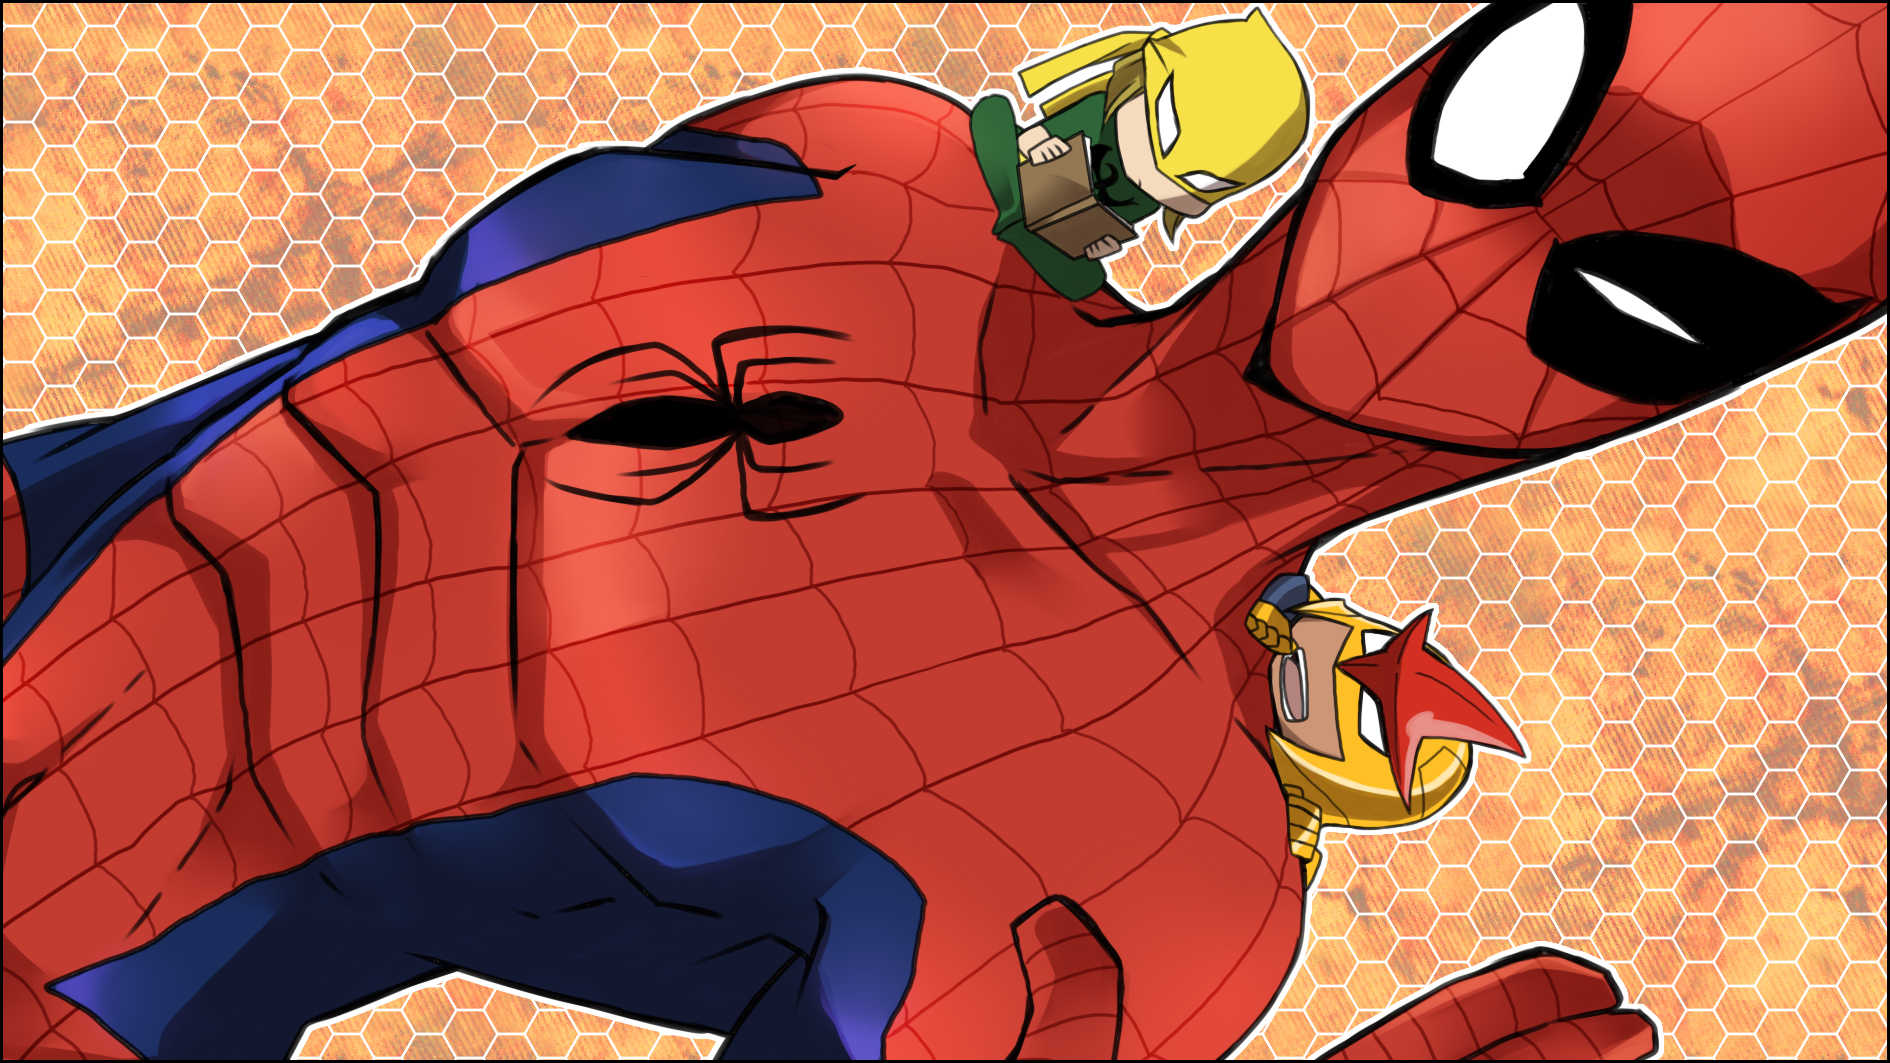 Spider-Man Wallpaper and Background Image | 1890x1063 | ID ...